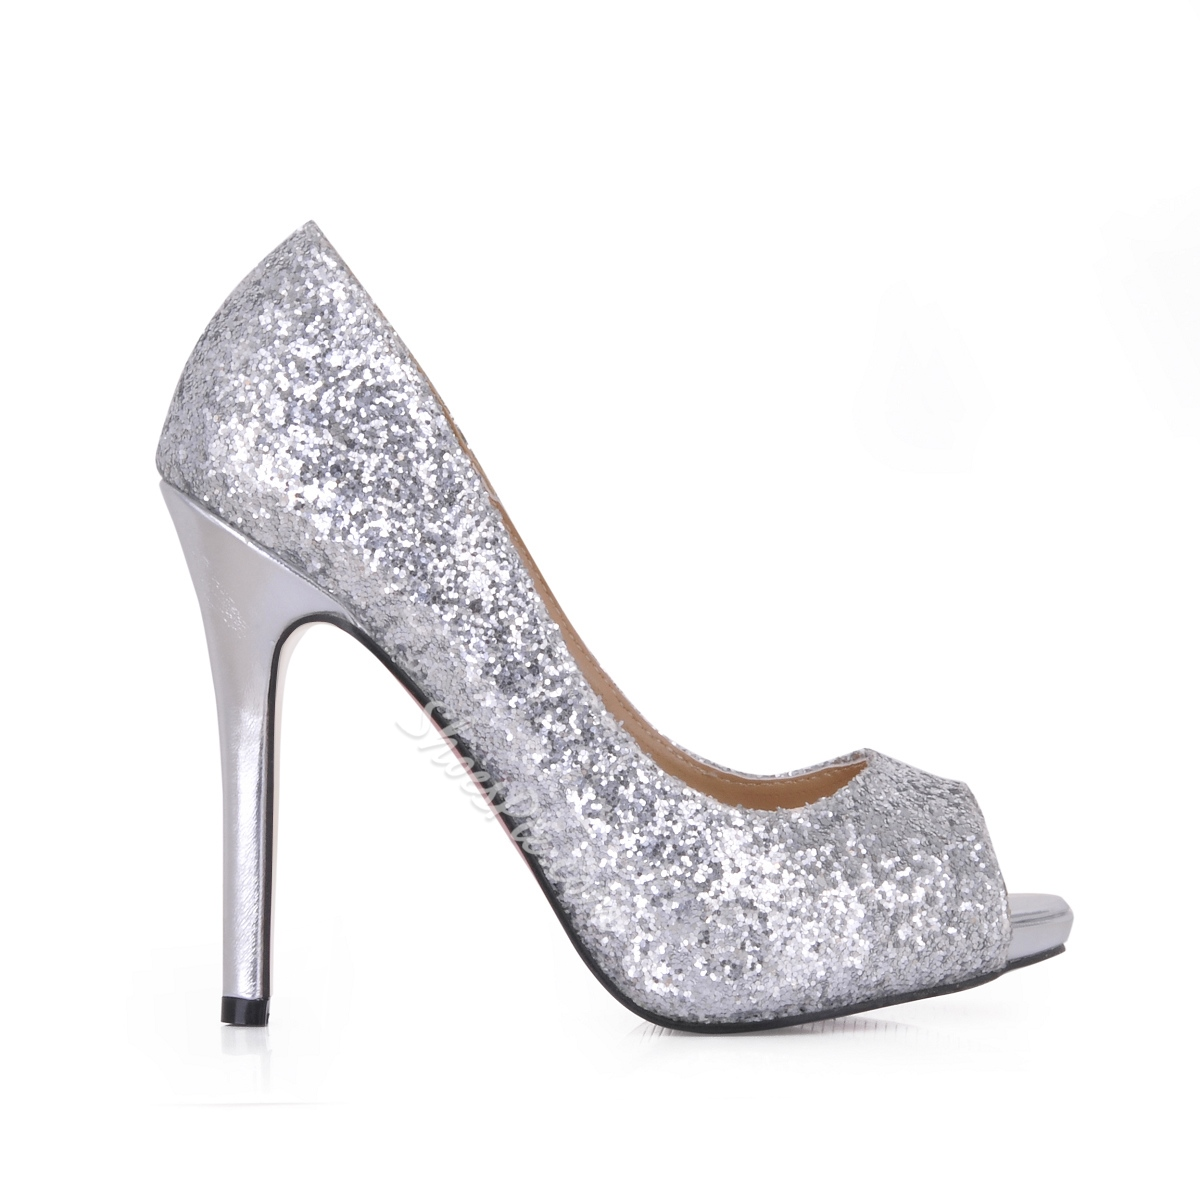 Shining Silver Stiletto Heels Peep Toe Prom/Evening Shoes ...